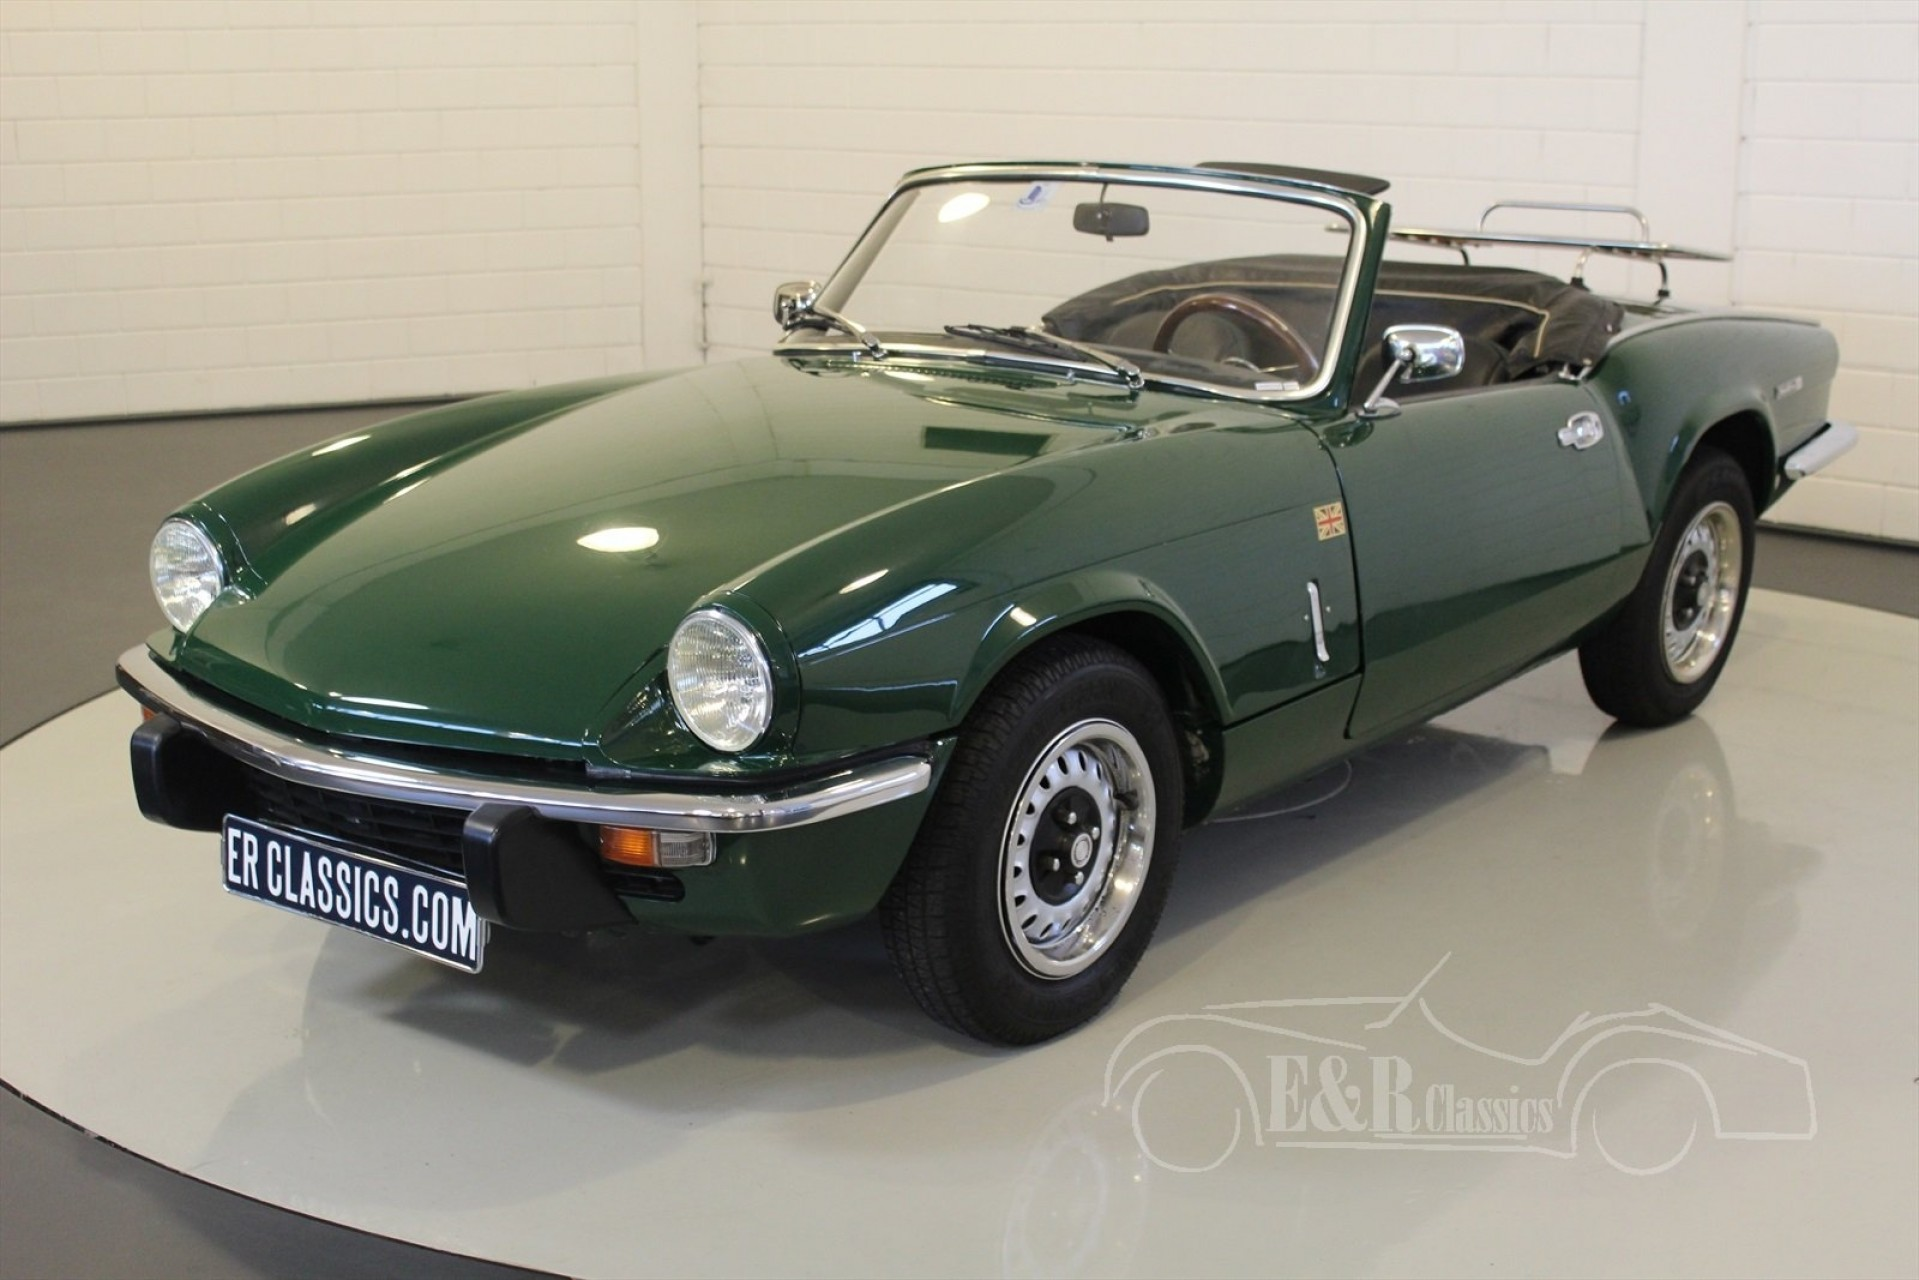 triumph spitfire mk4 1973 for sale at erclassics. Black Bedroom Furniture Sets. Home Design Ideas